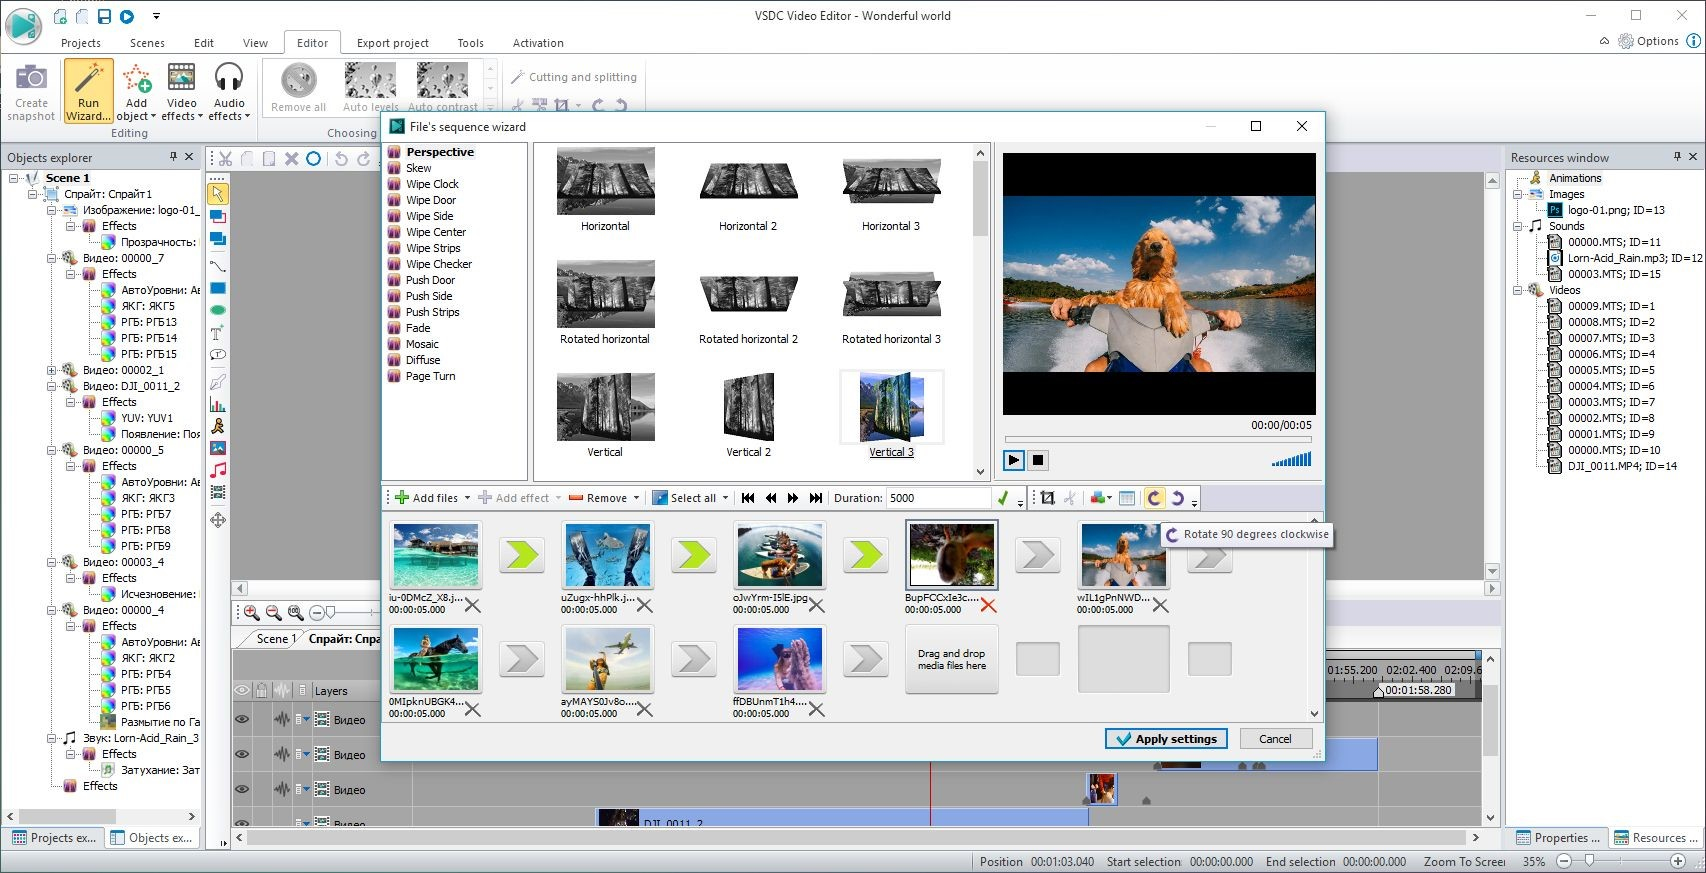 Vsdc video editor alternatives and similar software alternativeto its possible to update the information on vsdc video editor or report it as discontinued duplicated or spam ccuart Gallery